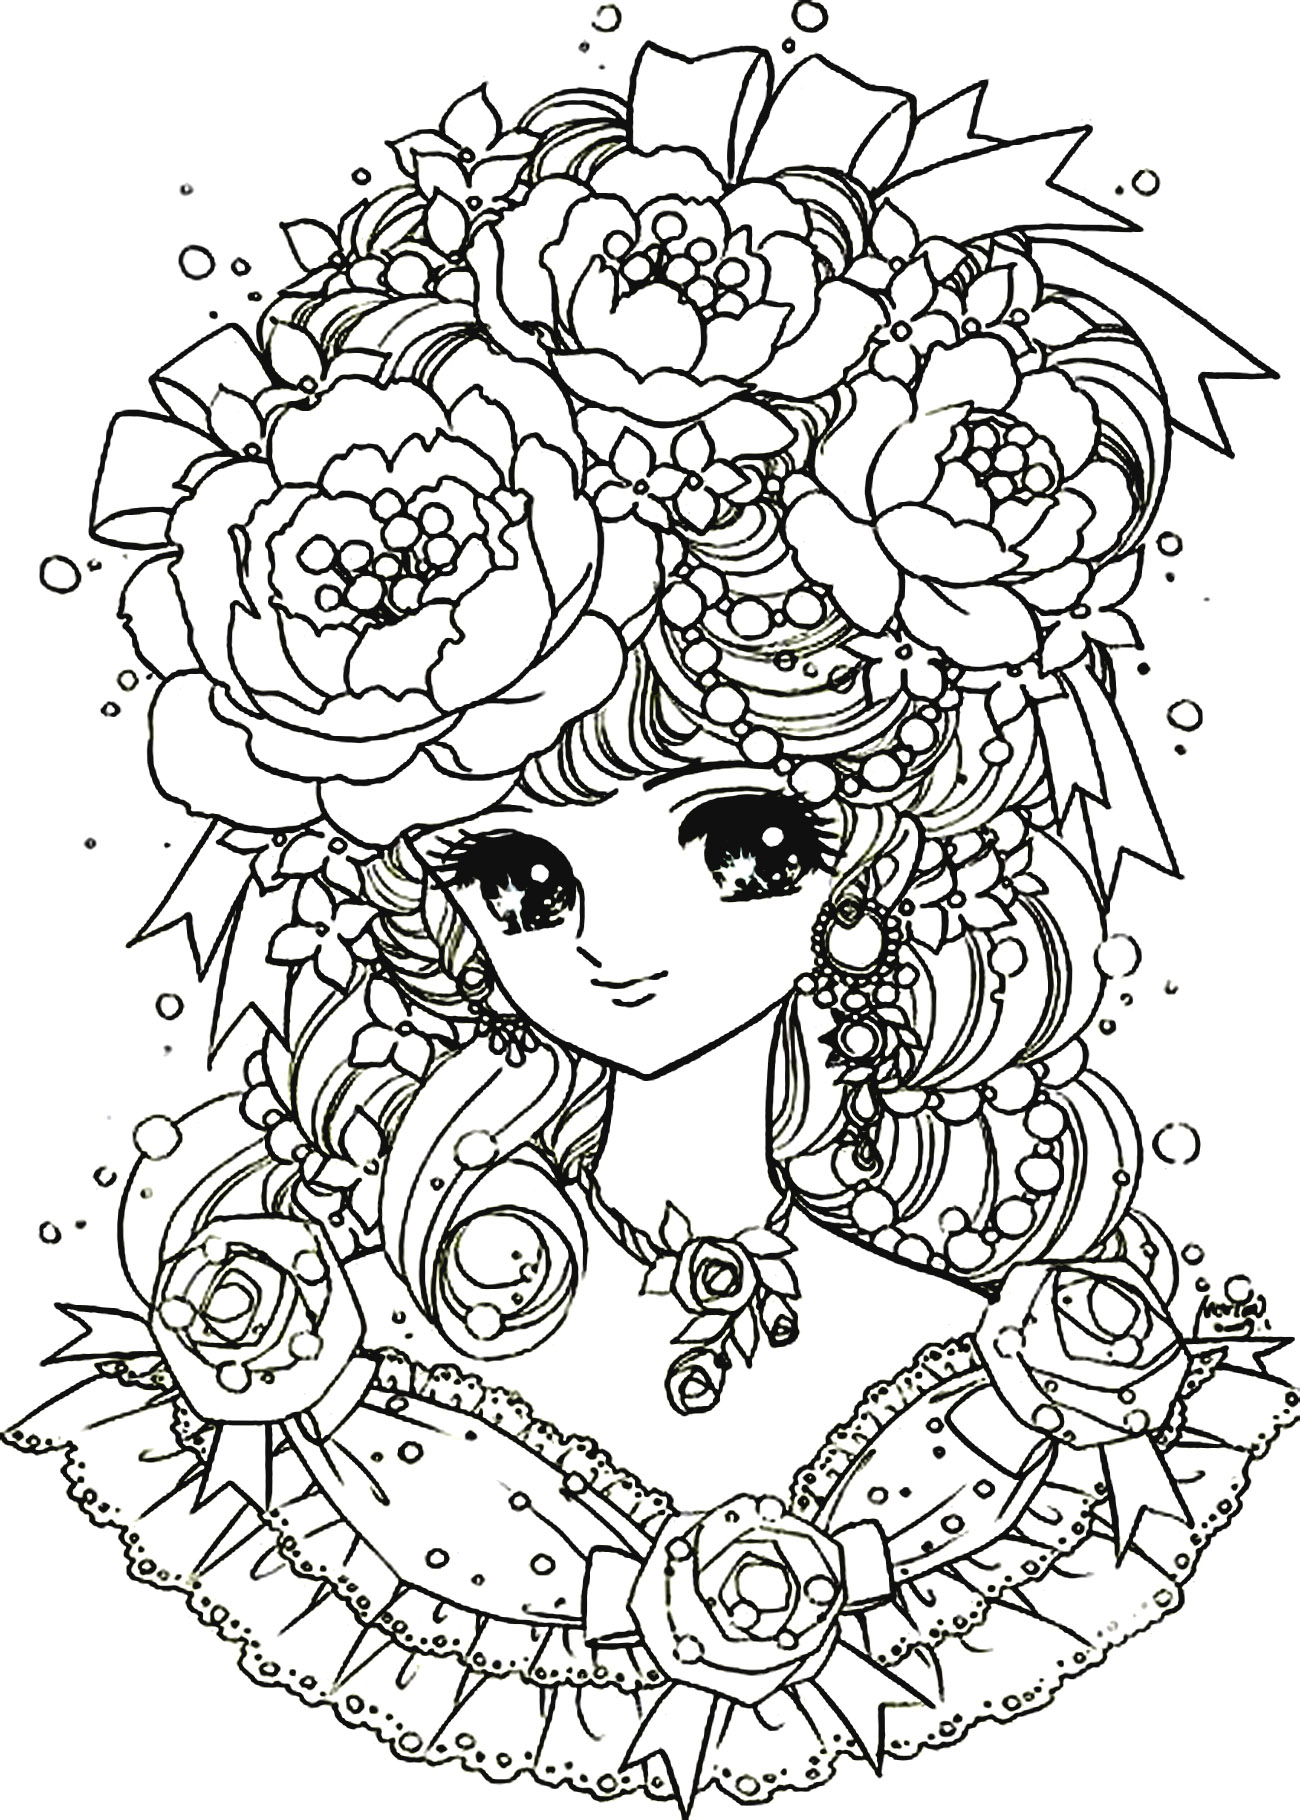 print - Manga Coloring Pages